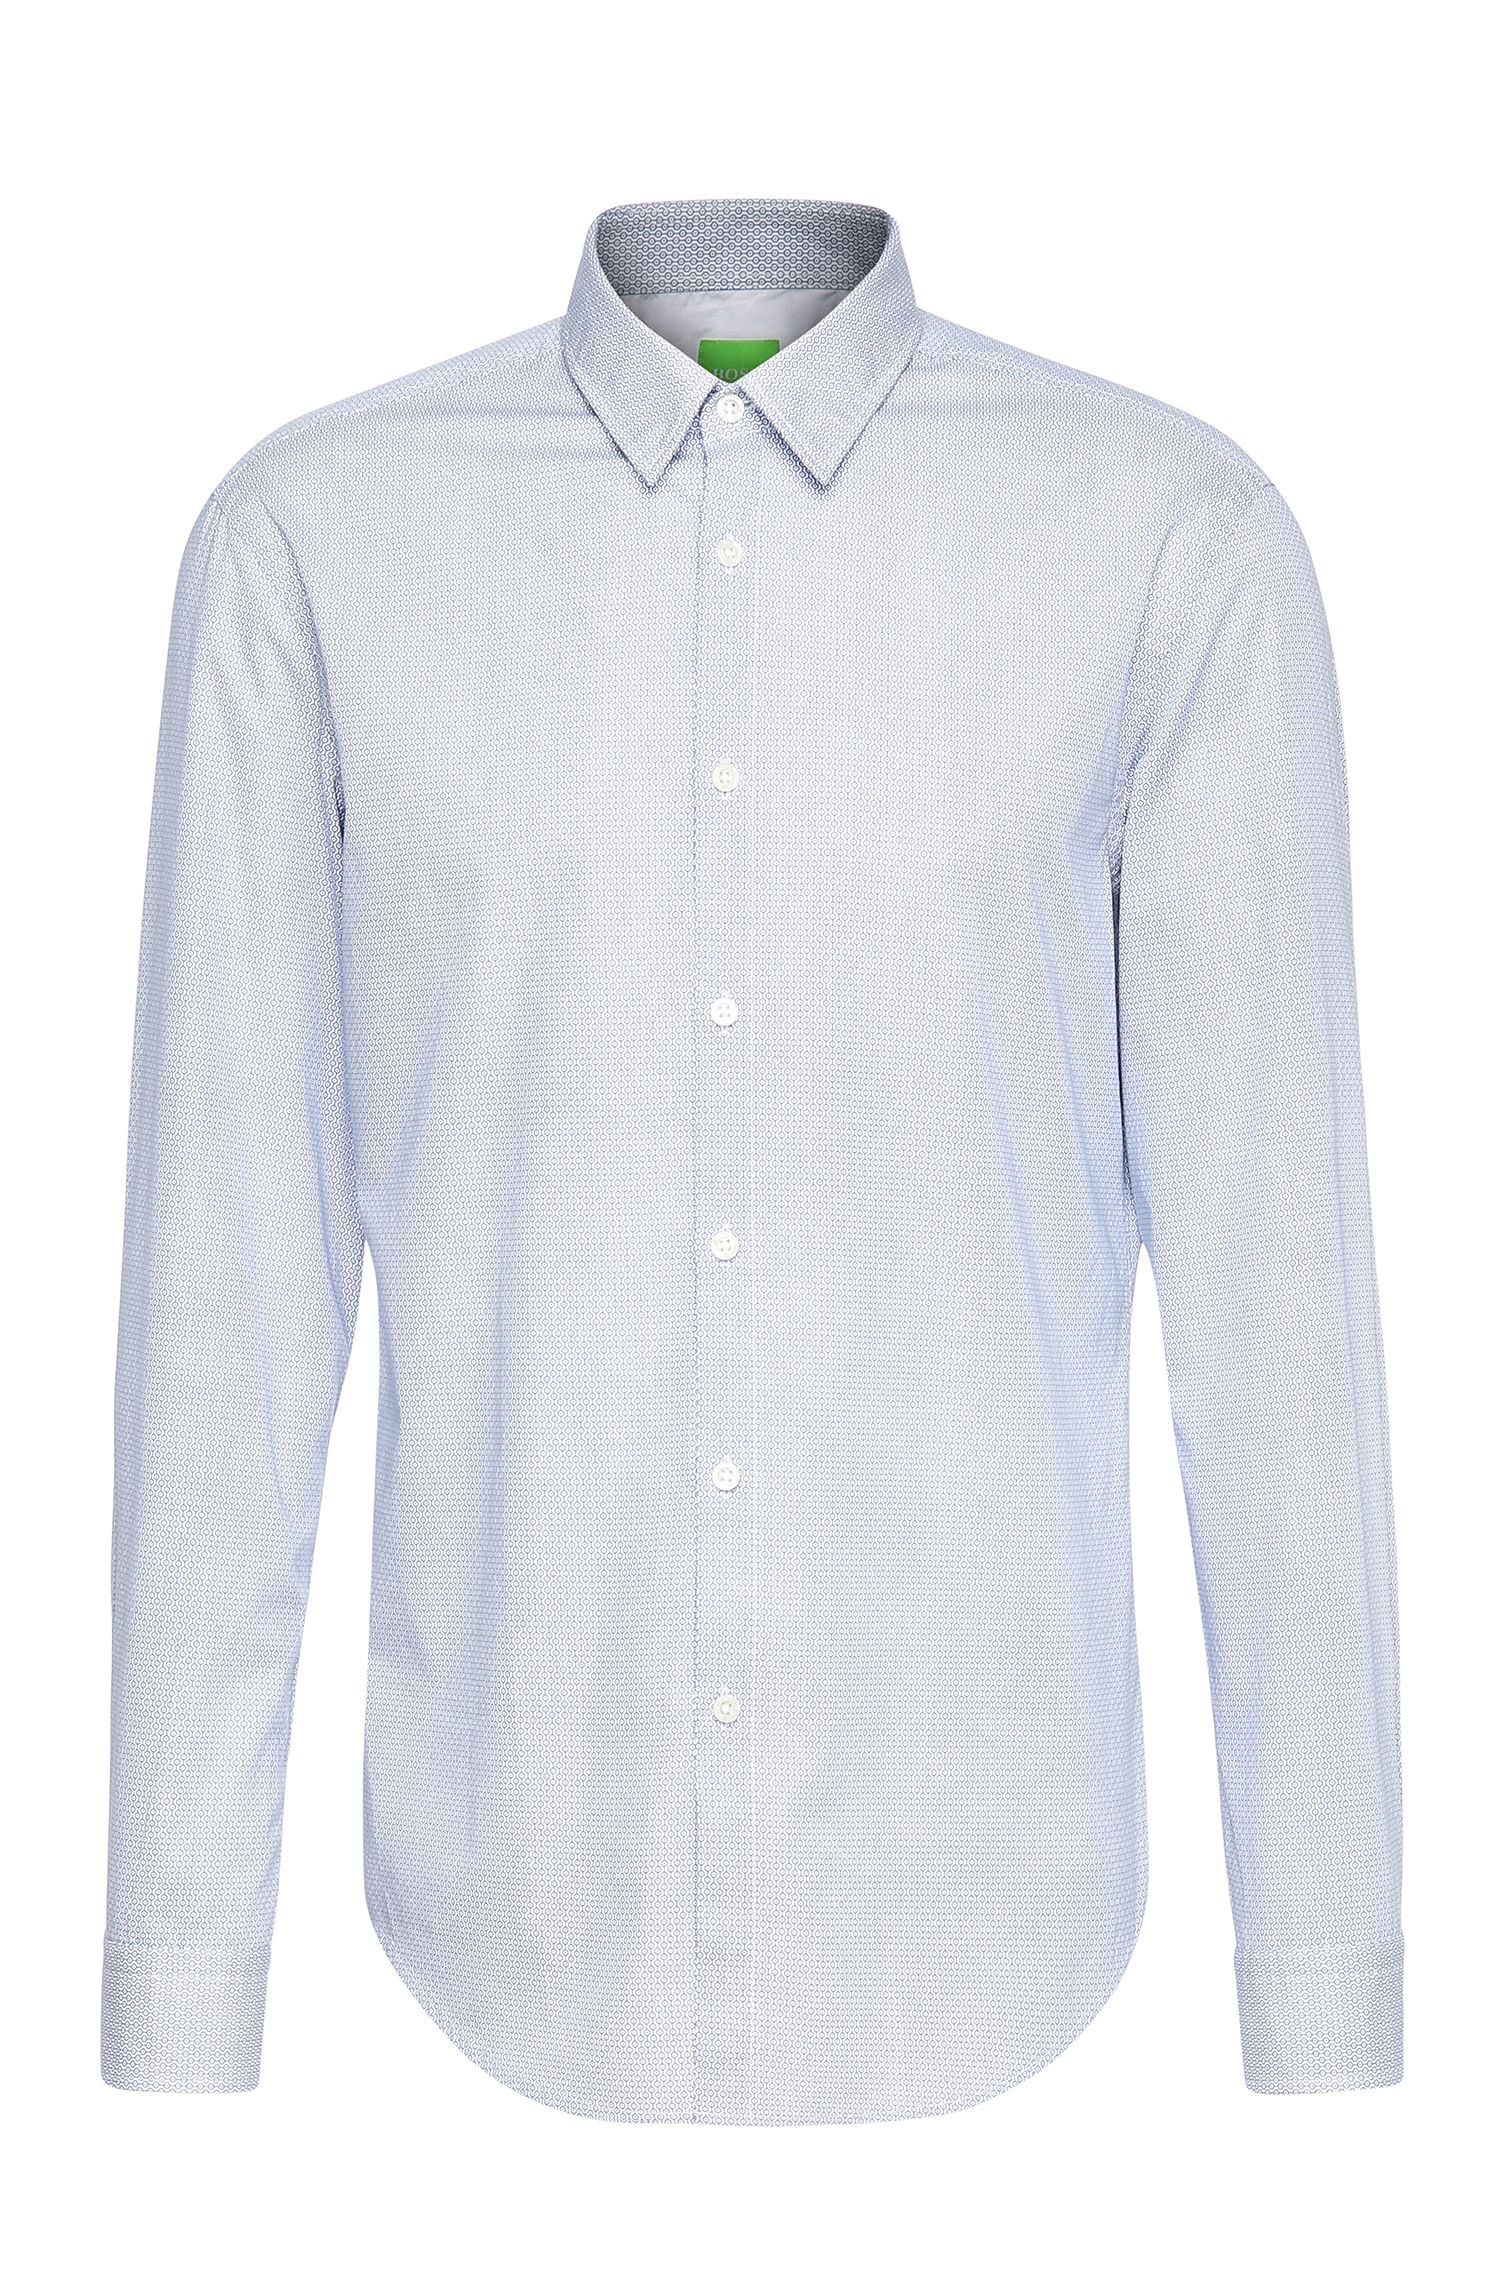 'C-Bustai' | Modern Fit, Cotton Button Down Shirt